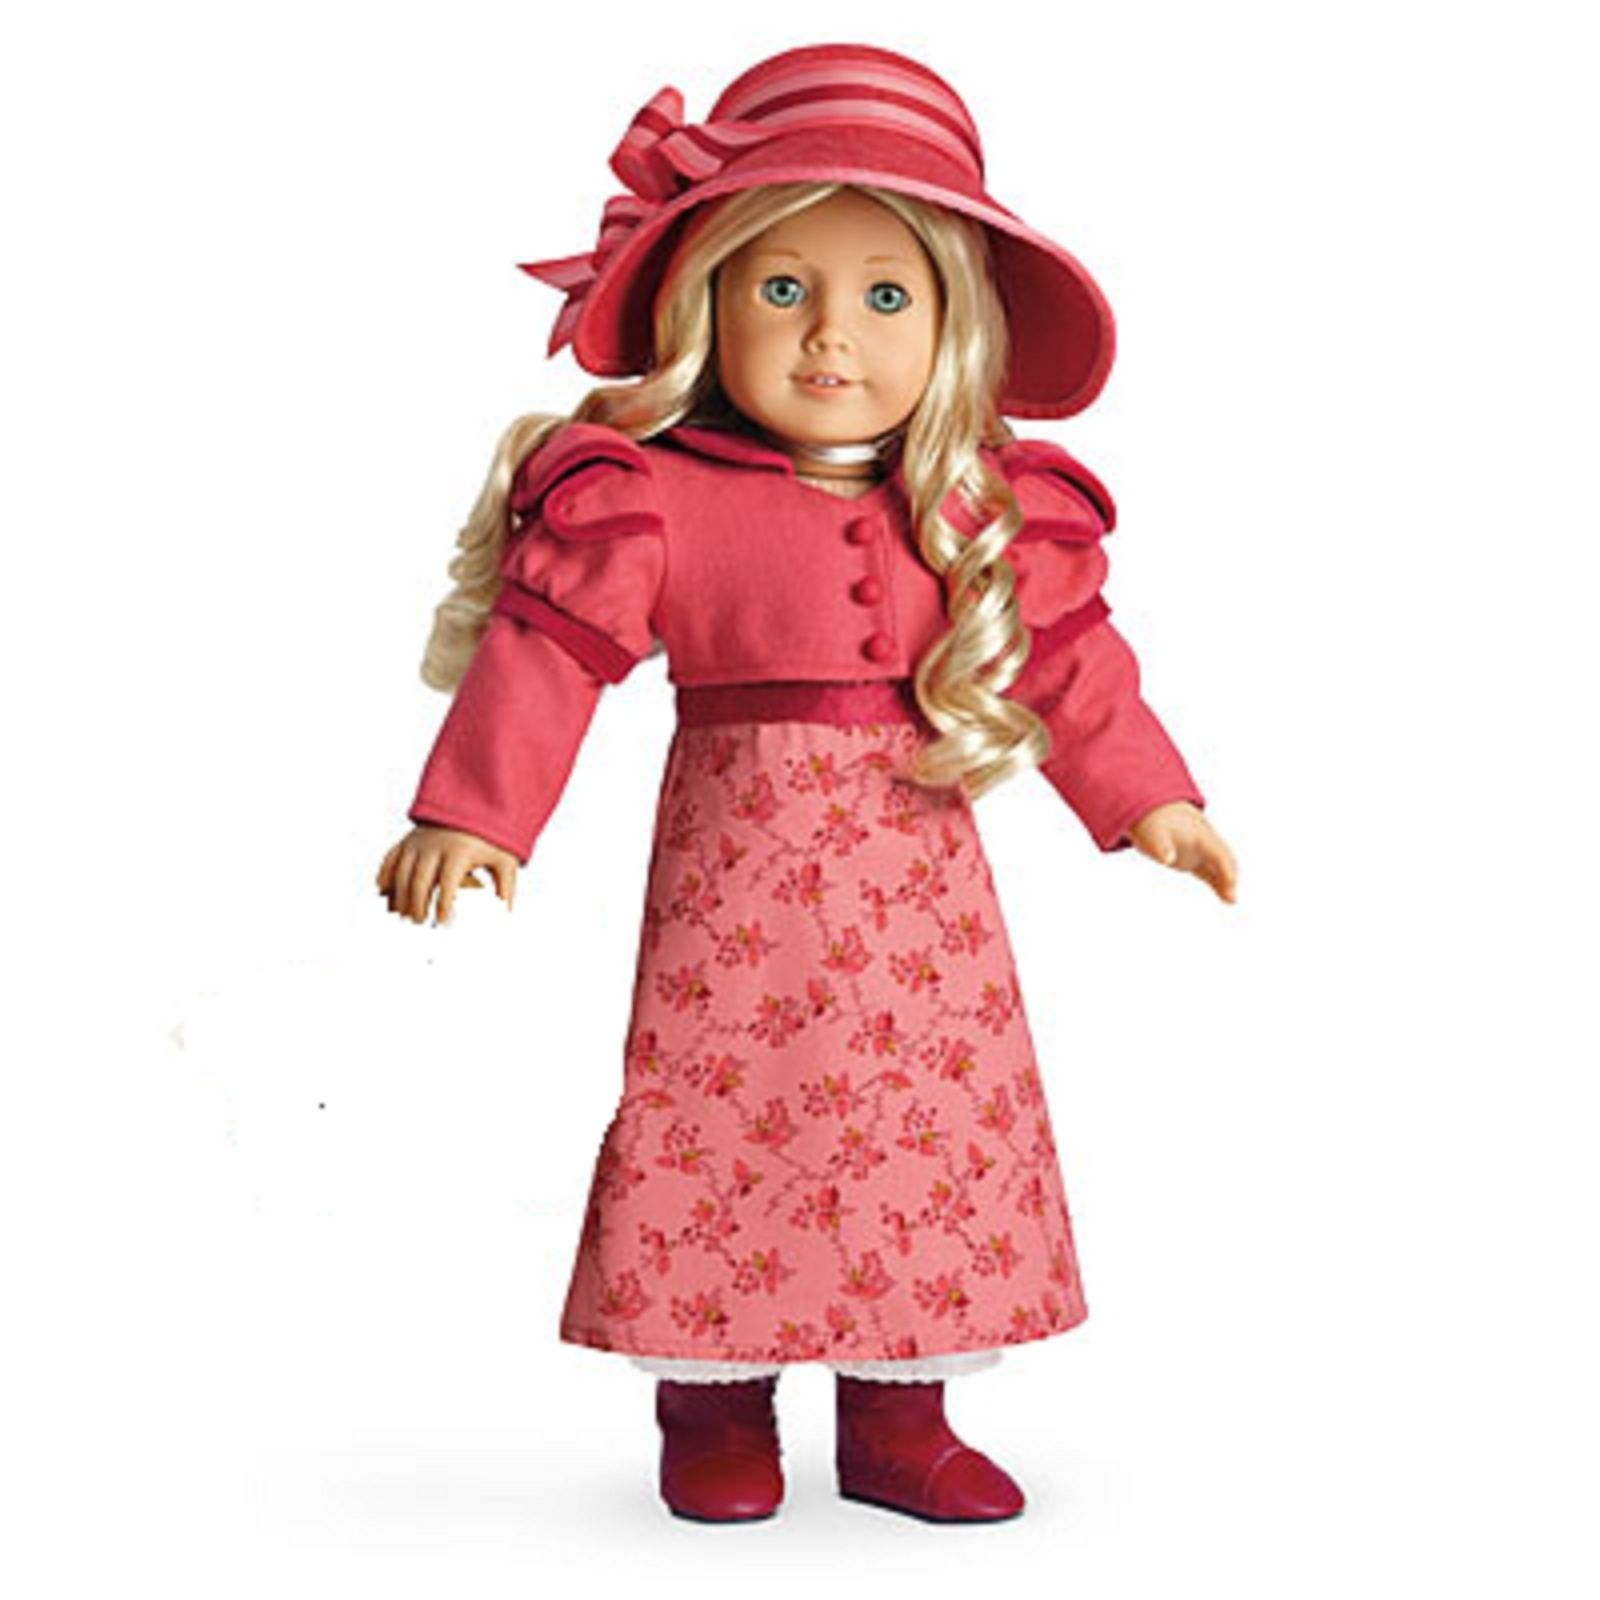 American Girl MOLLY DRESS PARTY NIB  doll and shoes not included